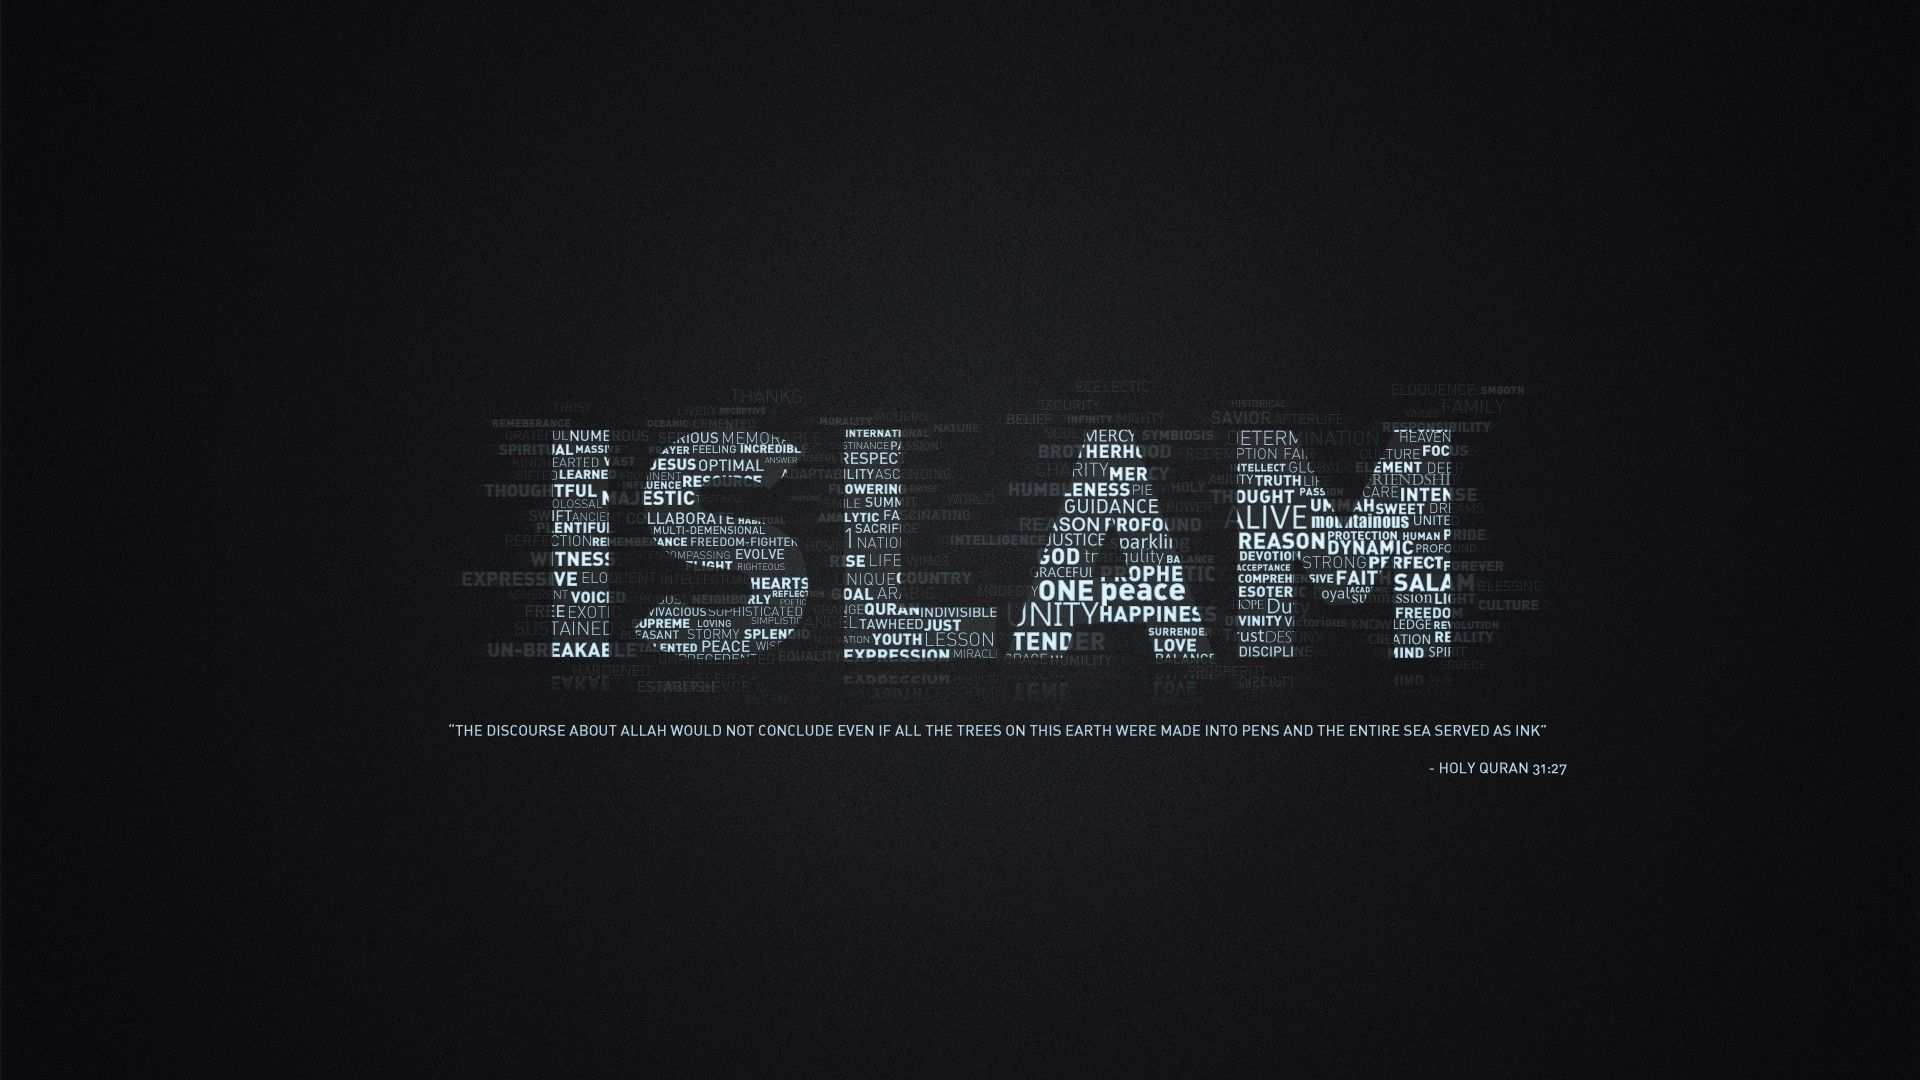 Islamic Images Background HD Wallpaper